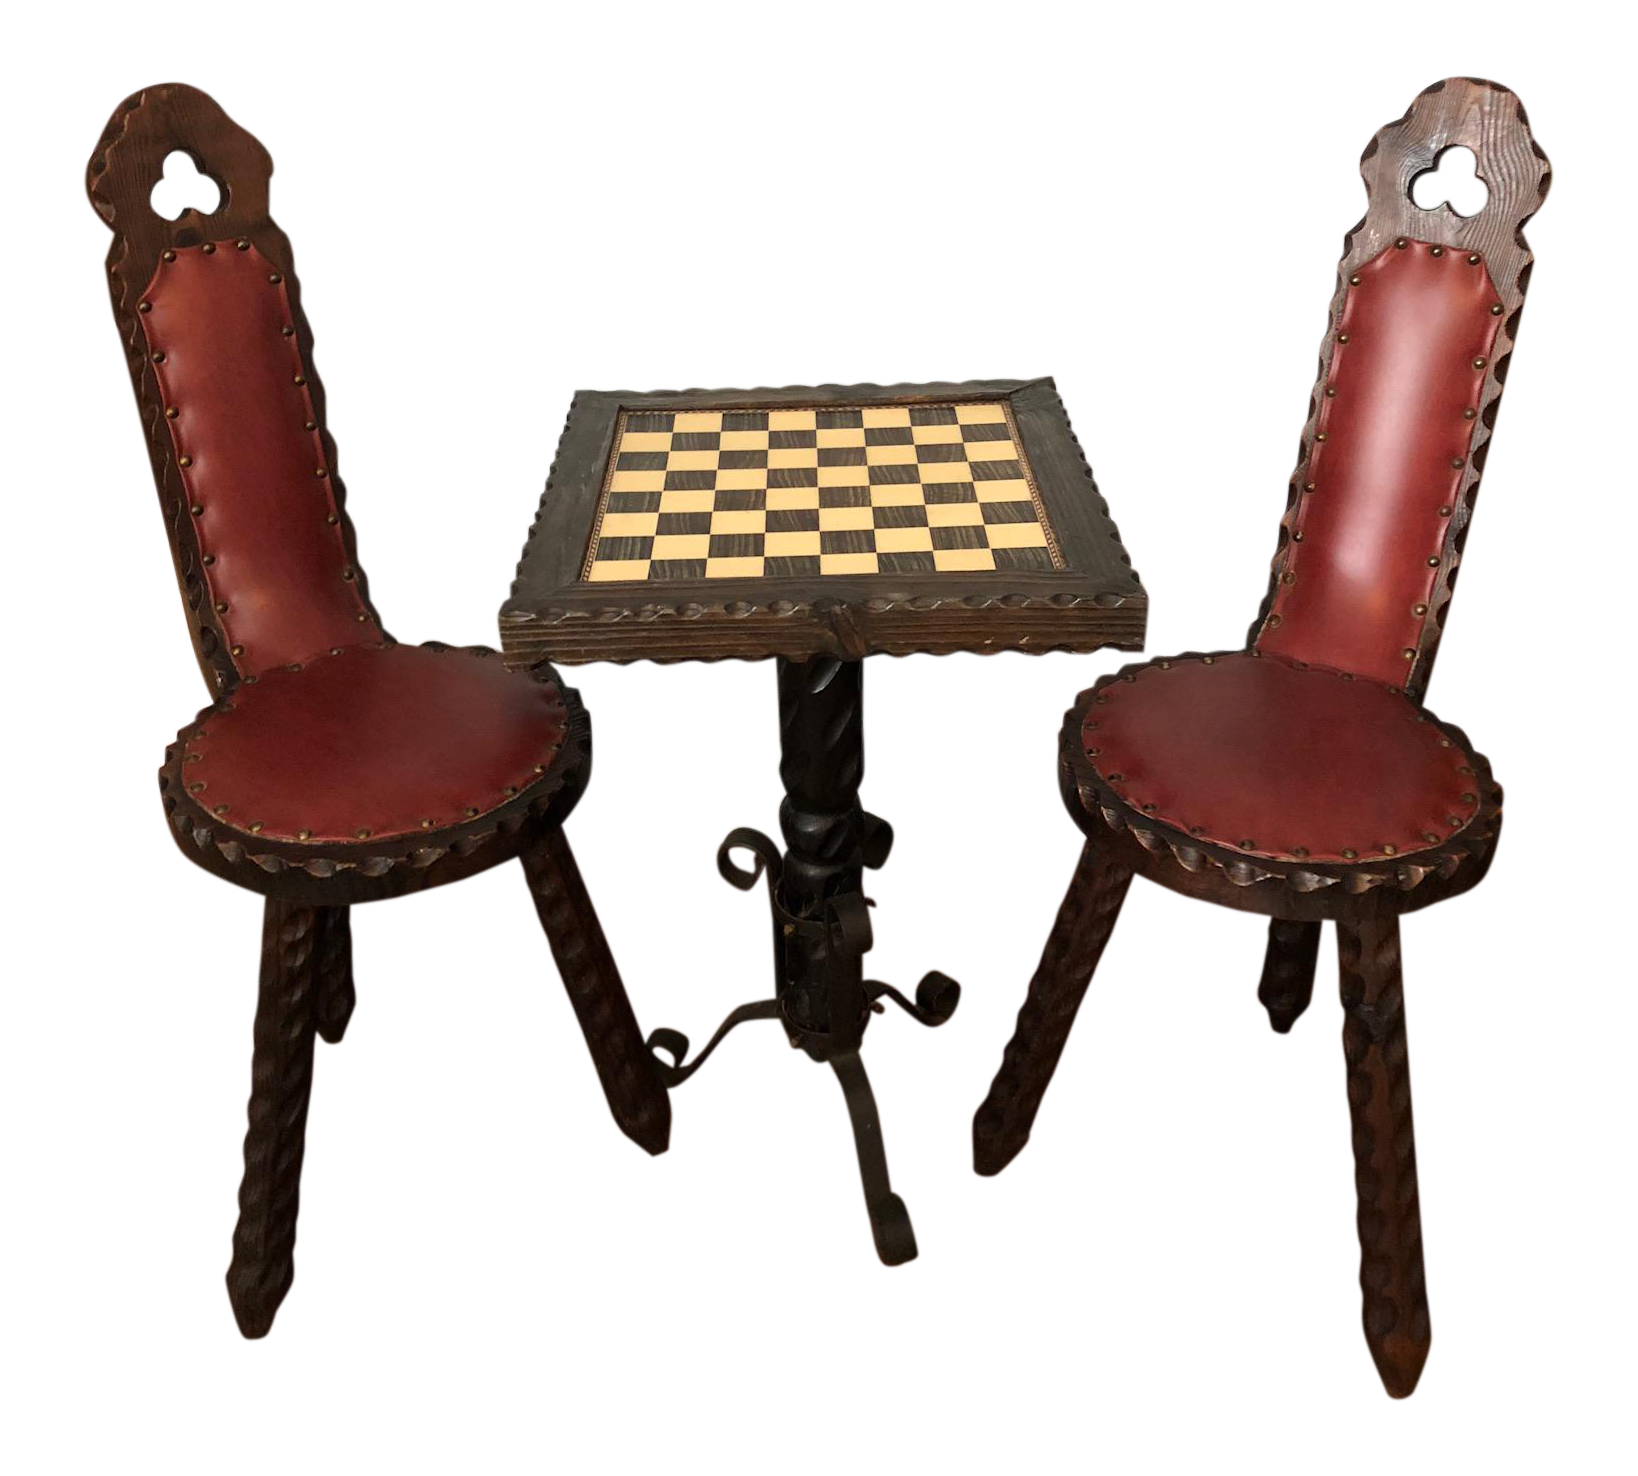 Vintage Spanish Carved Chess Table \u0026 Chairs - Set of 3  sc 1 st  Chairish & Vintage Spanish Carved Chess Table \u0026 Chairs - Set of 3 | Chairish